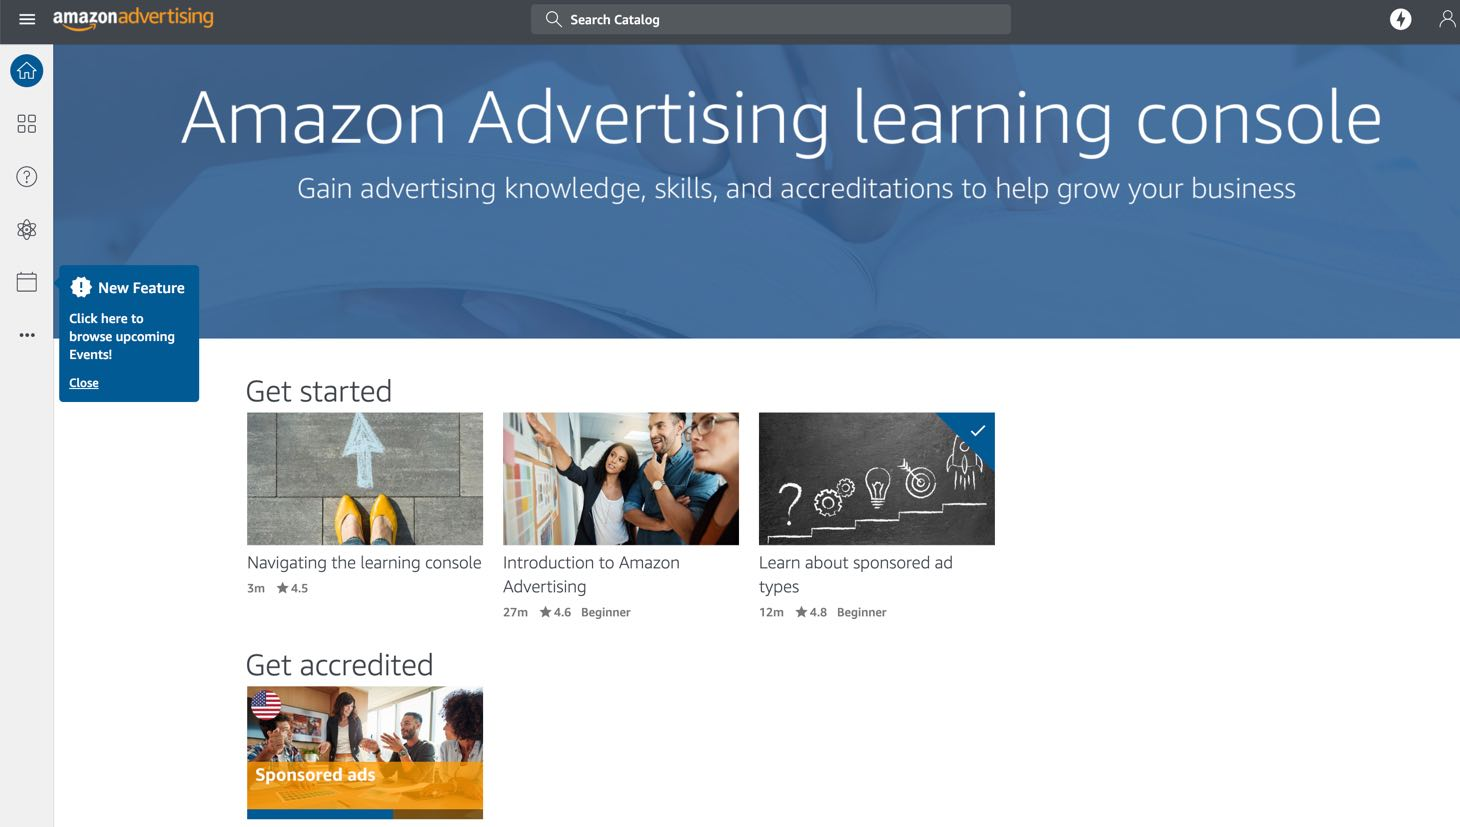 Amazon Learning Console